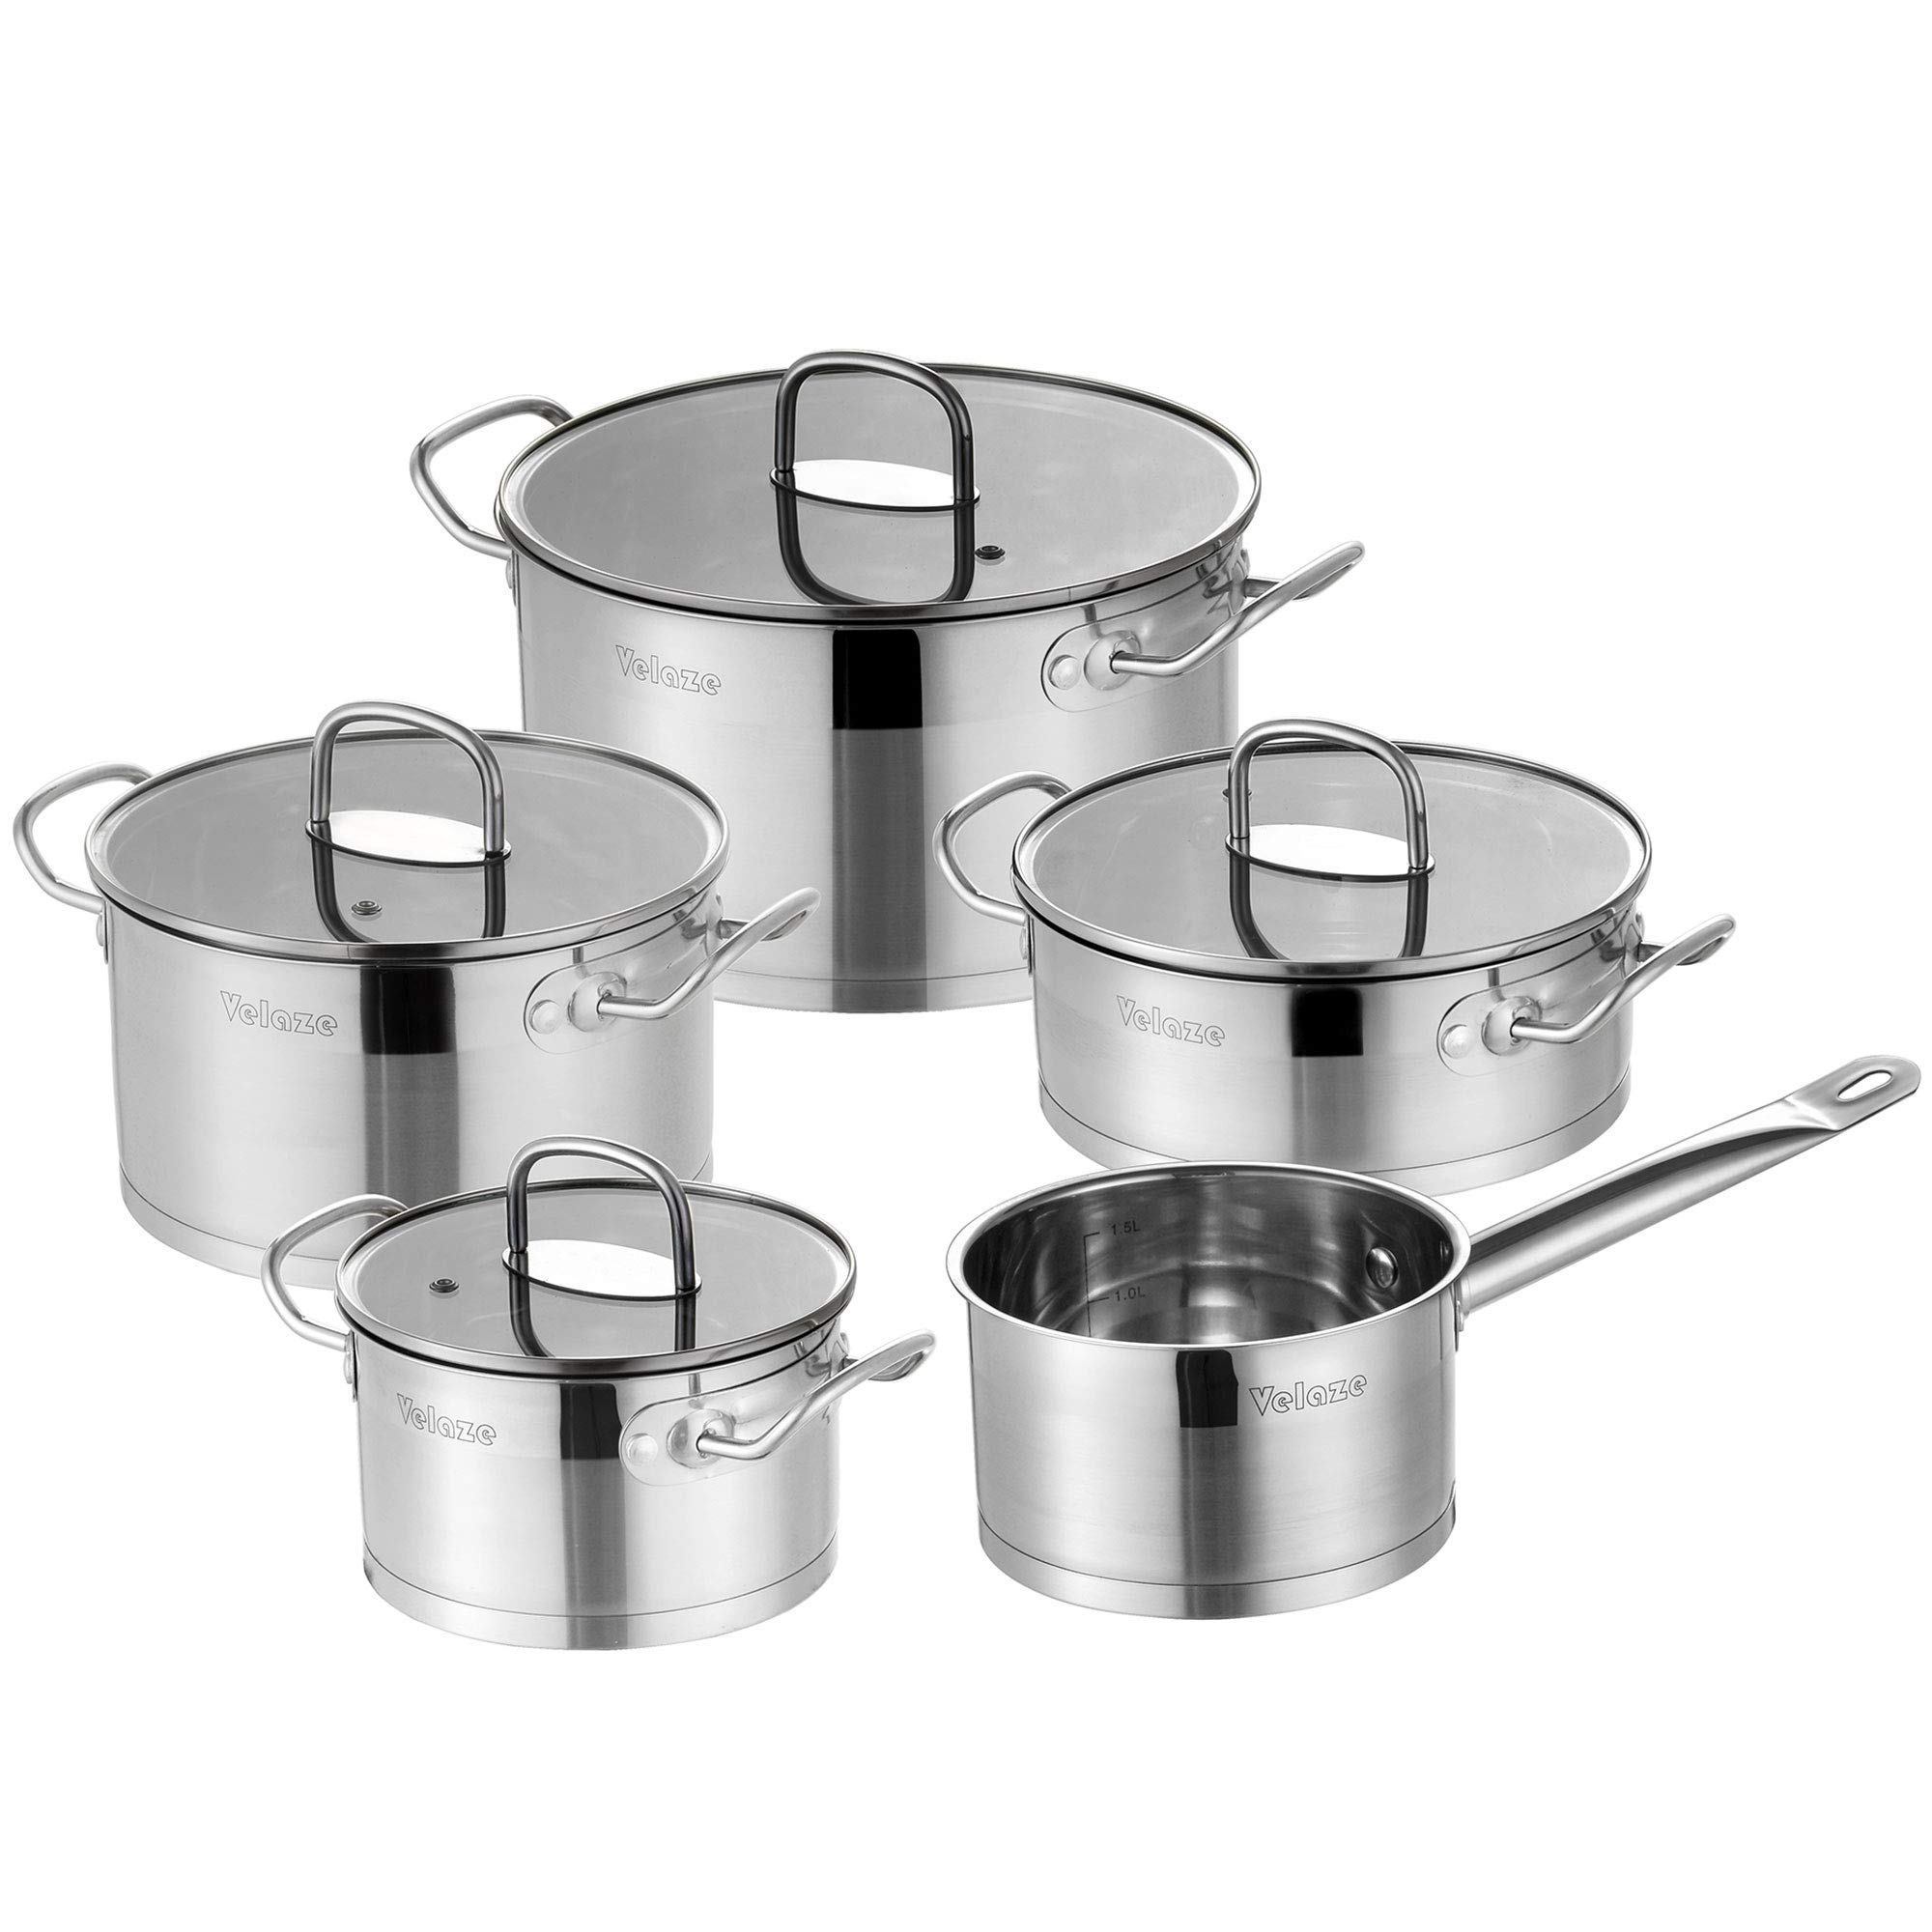 Velaze Stainless Steel Cookware Set, 9-Piece Pots and Pans Set, Cooking Pans with Glass Lid, Silver